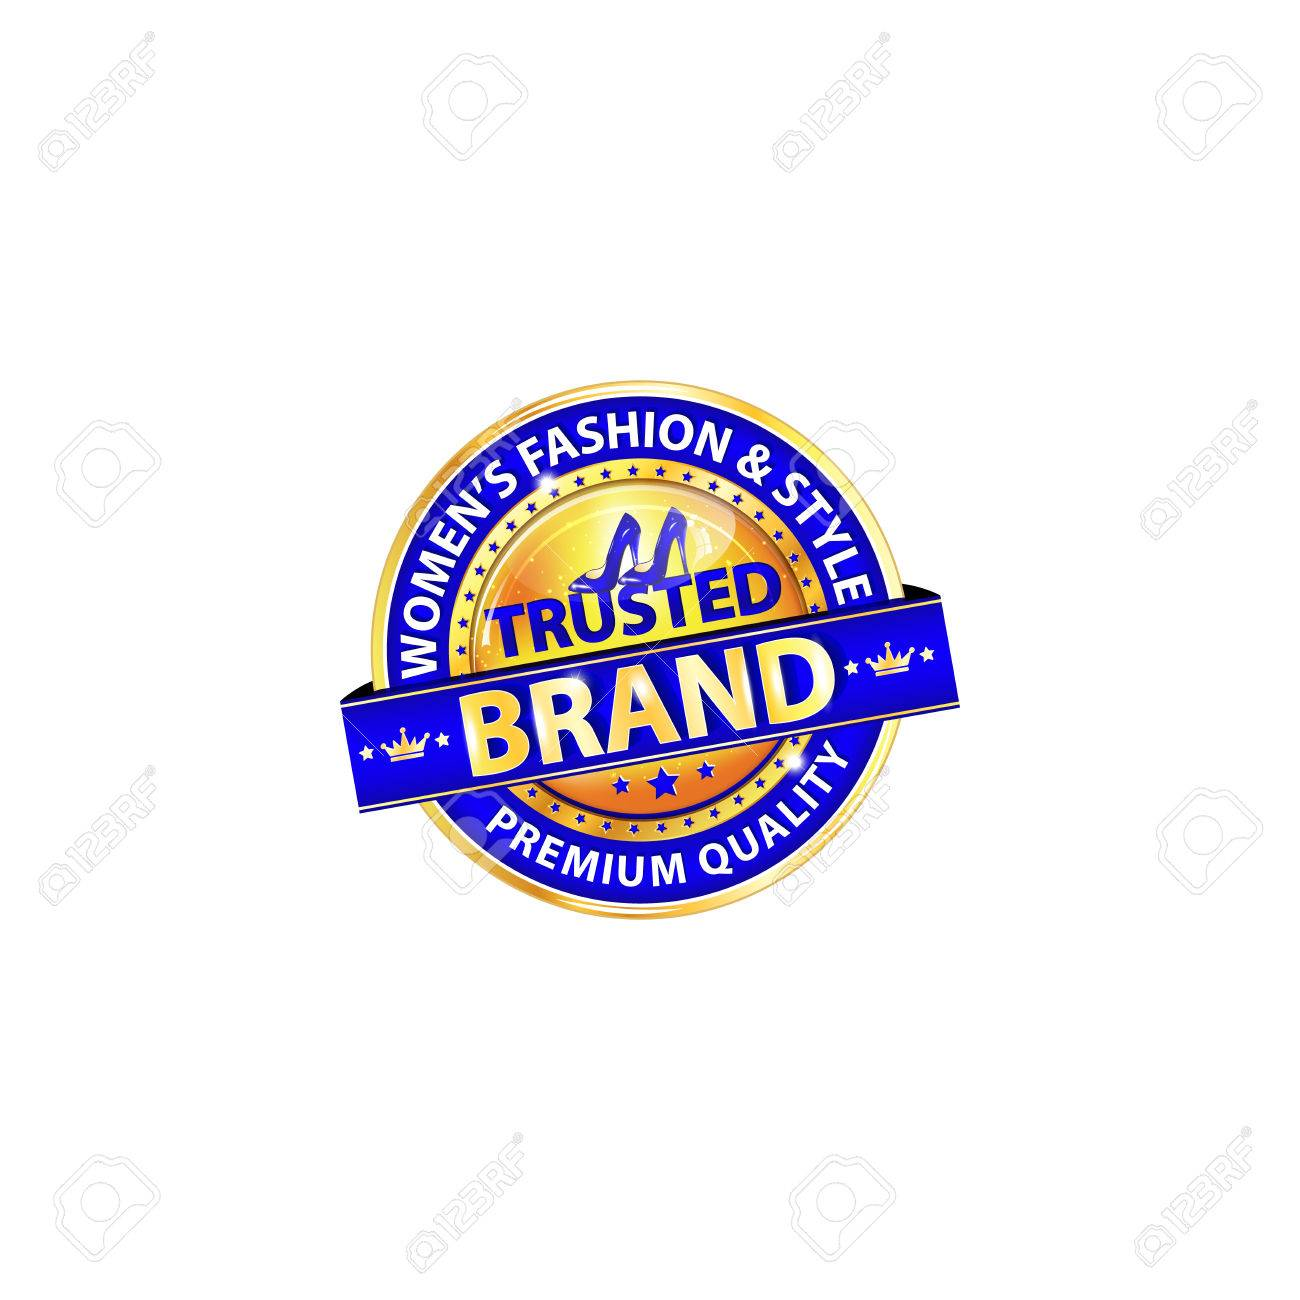 Trusted Brand Womens Fashion And Style Premium Quality